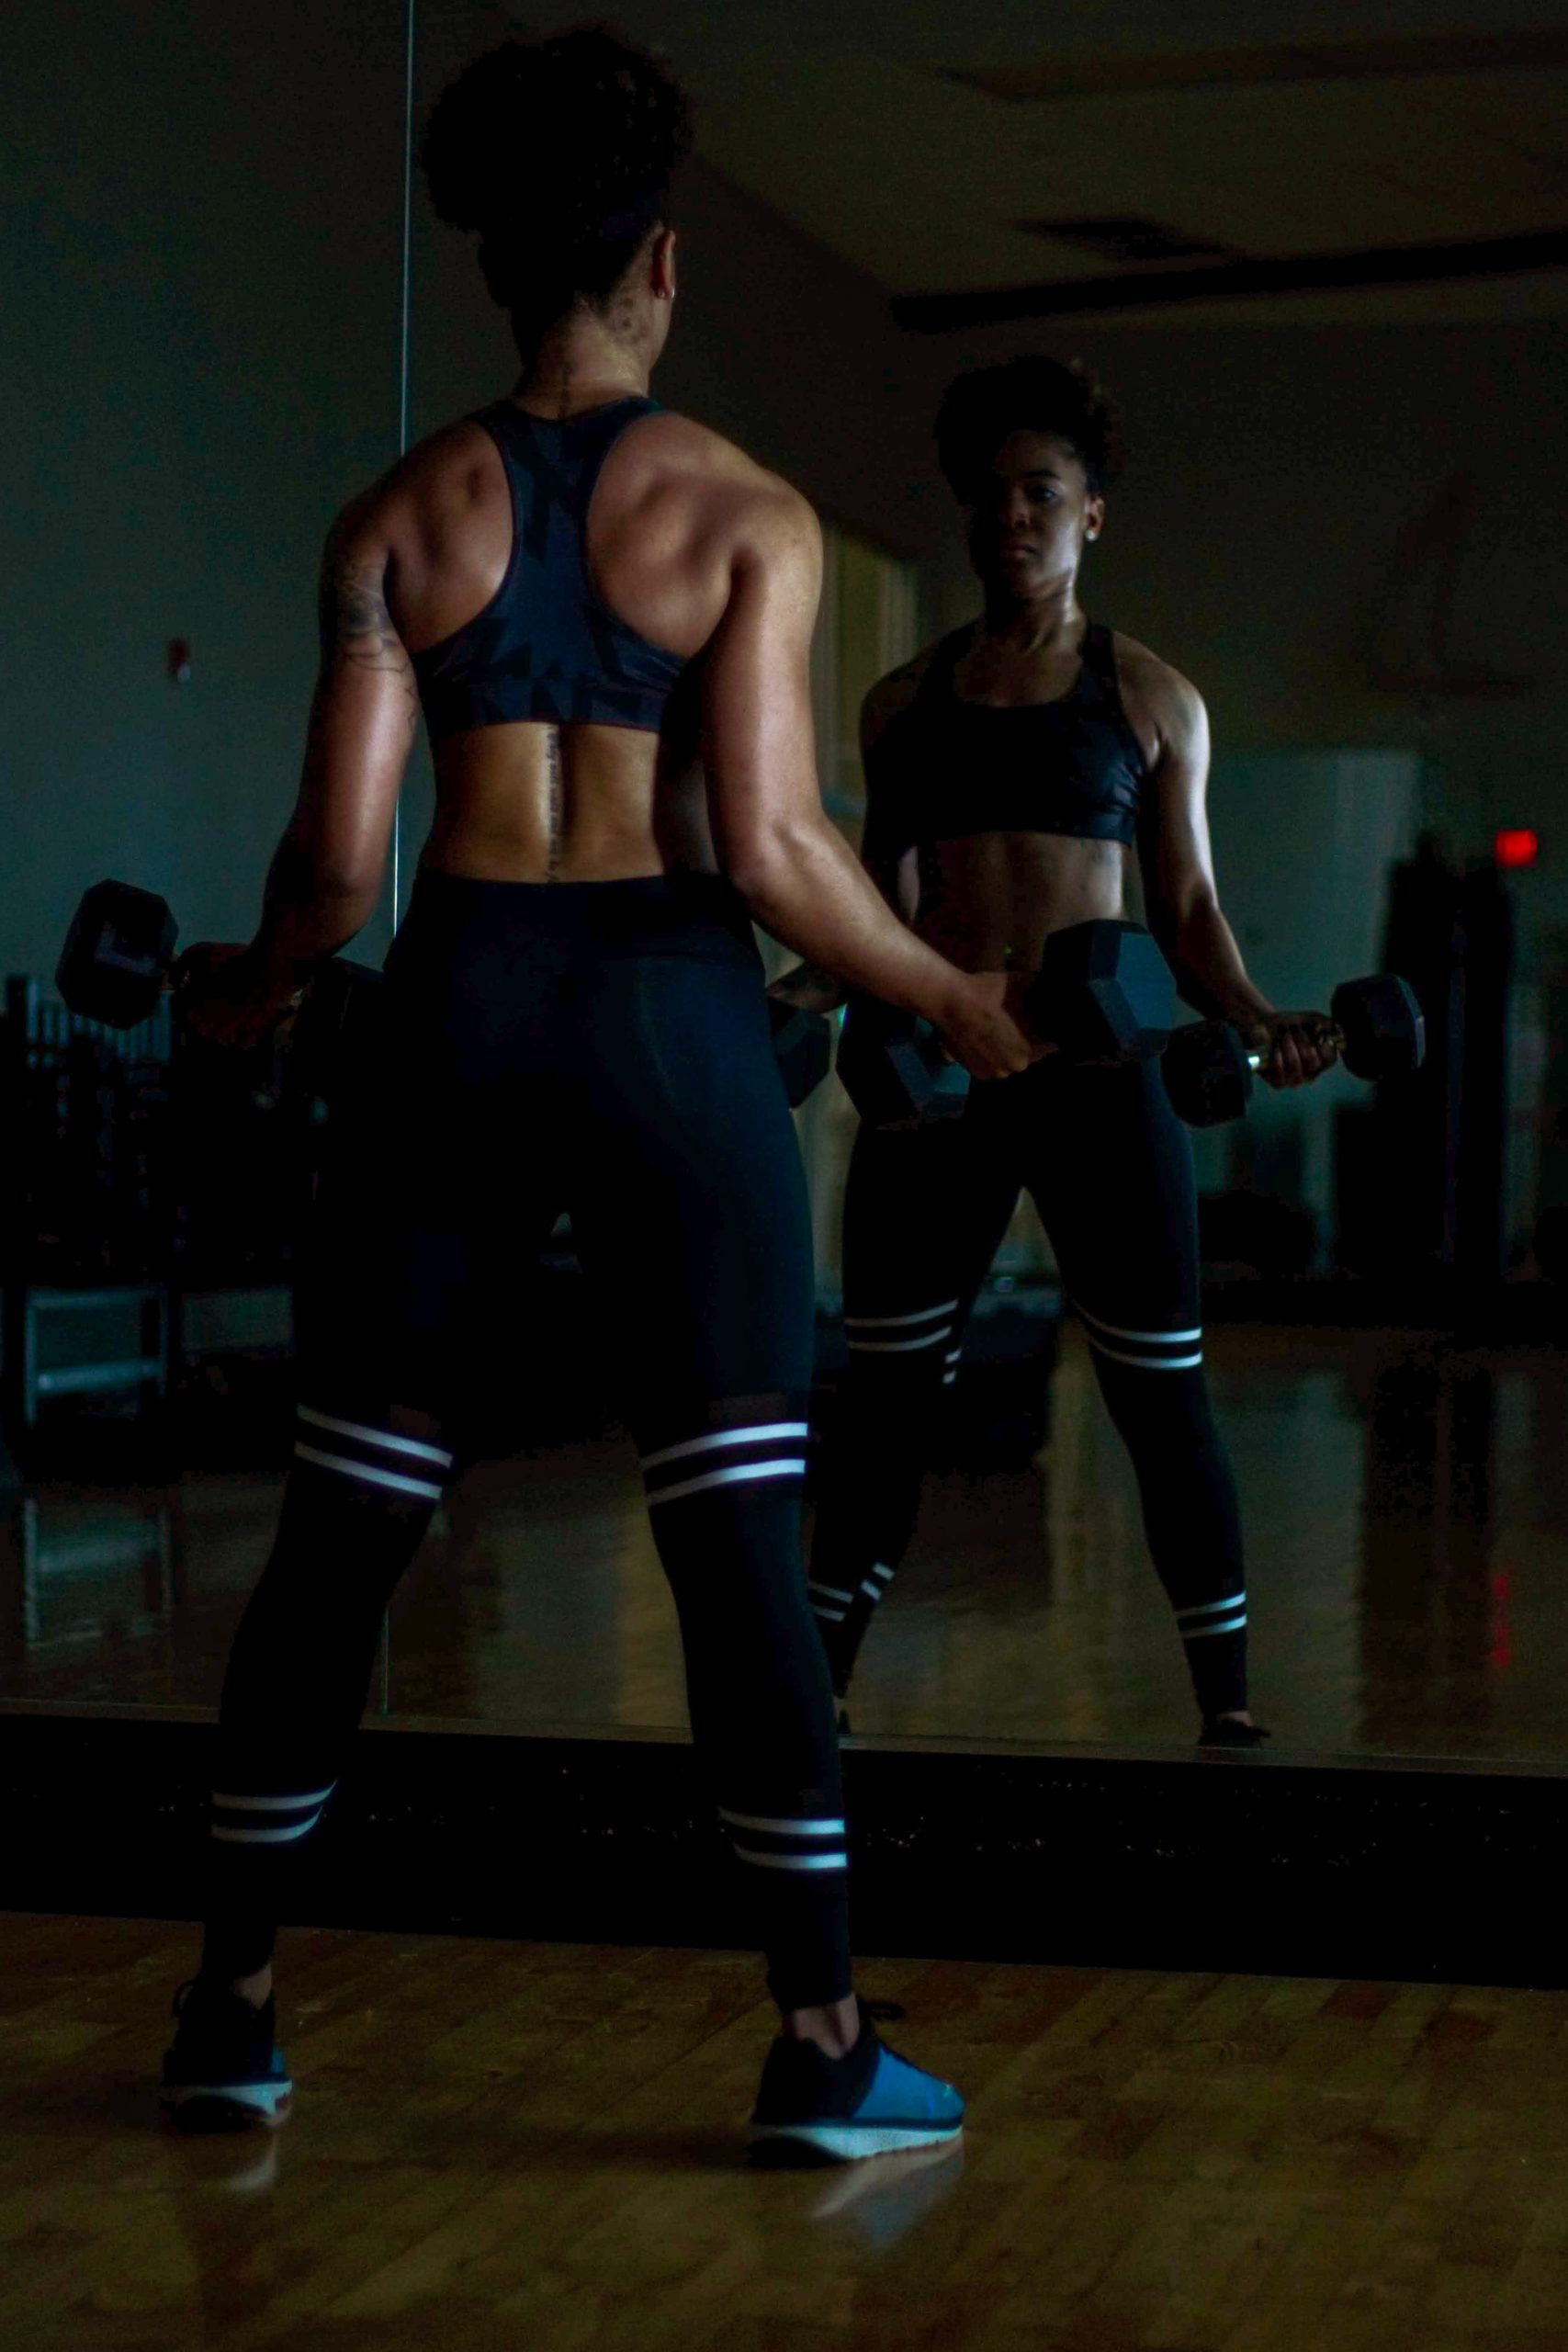 woman-lifting-two-dumbells-on-both-hands-in-front-of-mirror